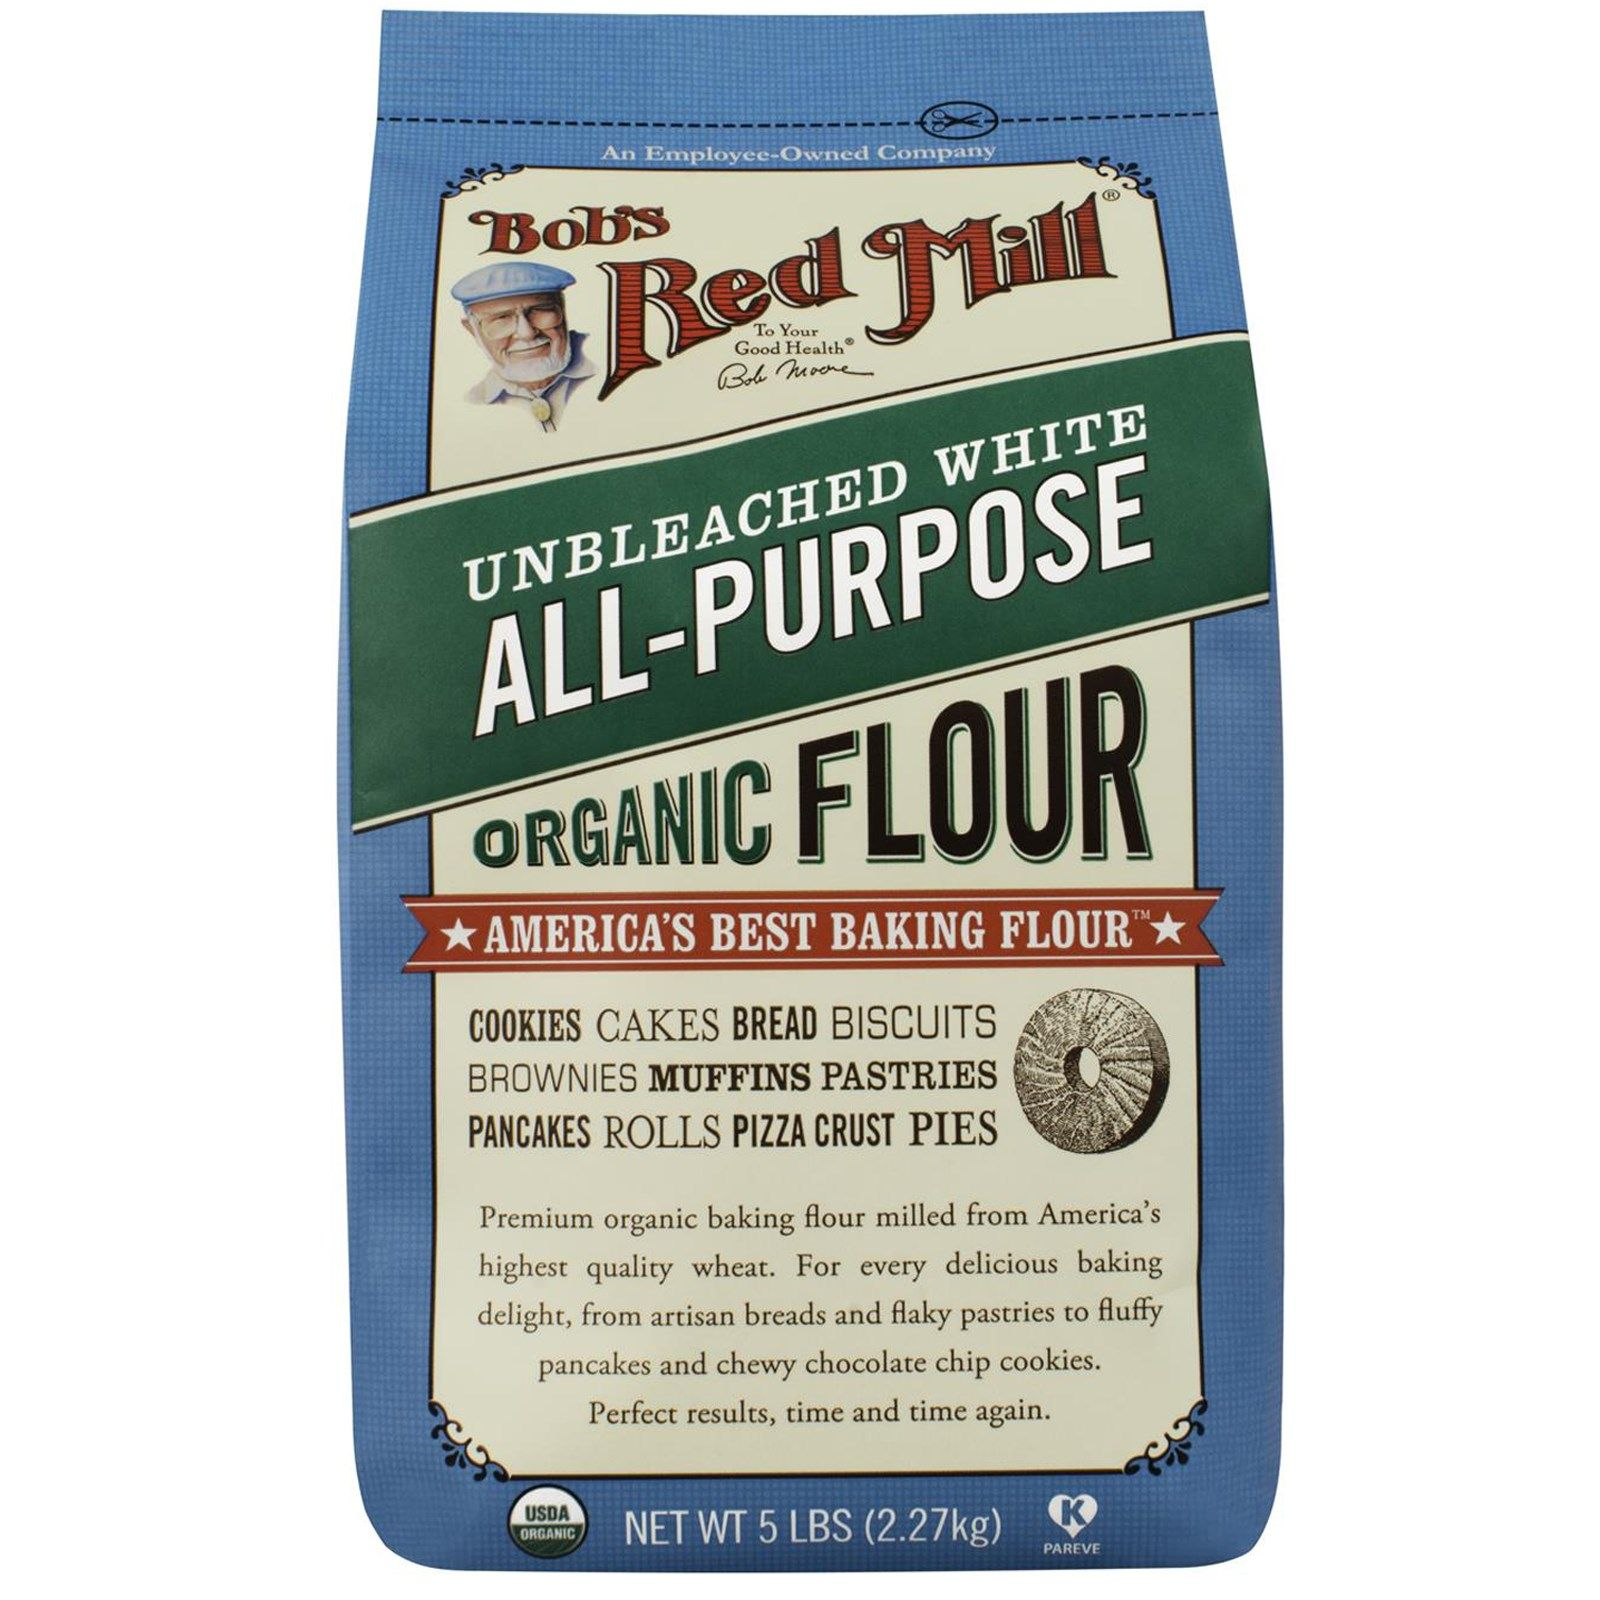 17+ Bobs red mill unbleached cake flour ideas